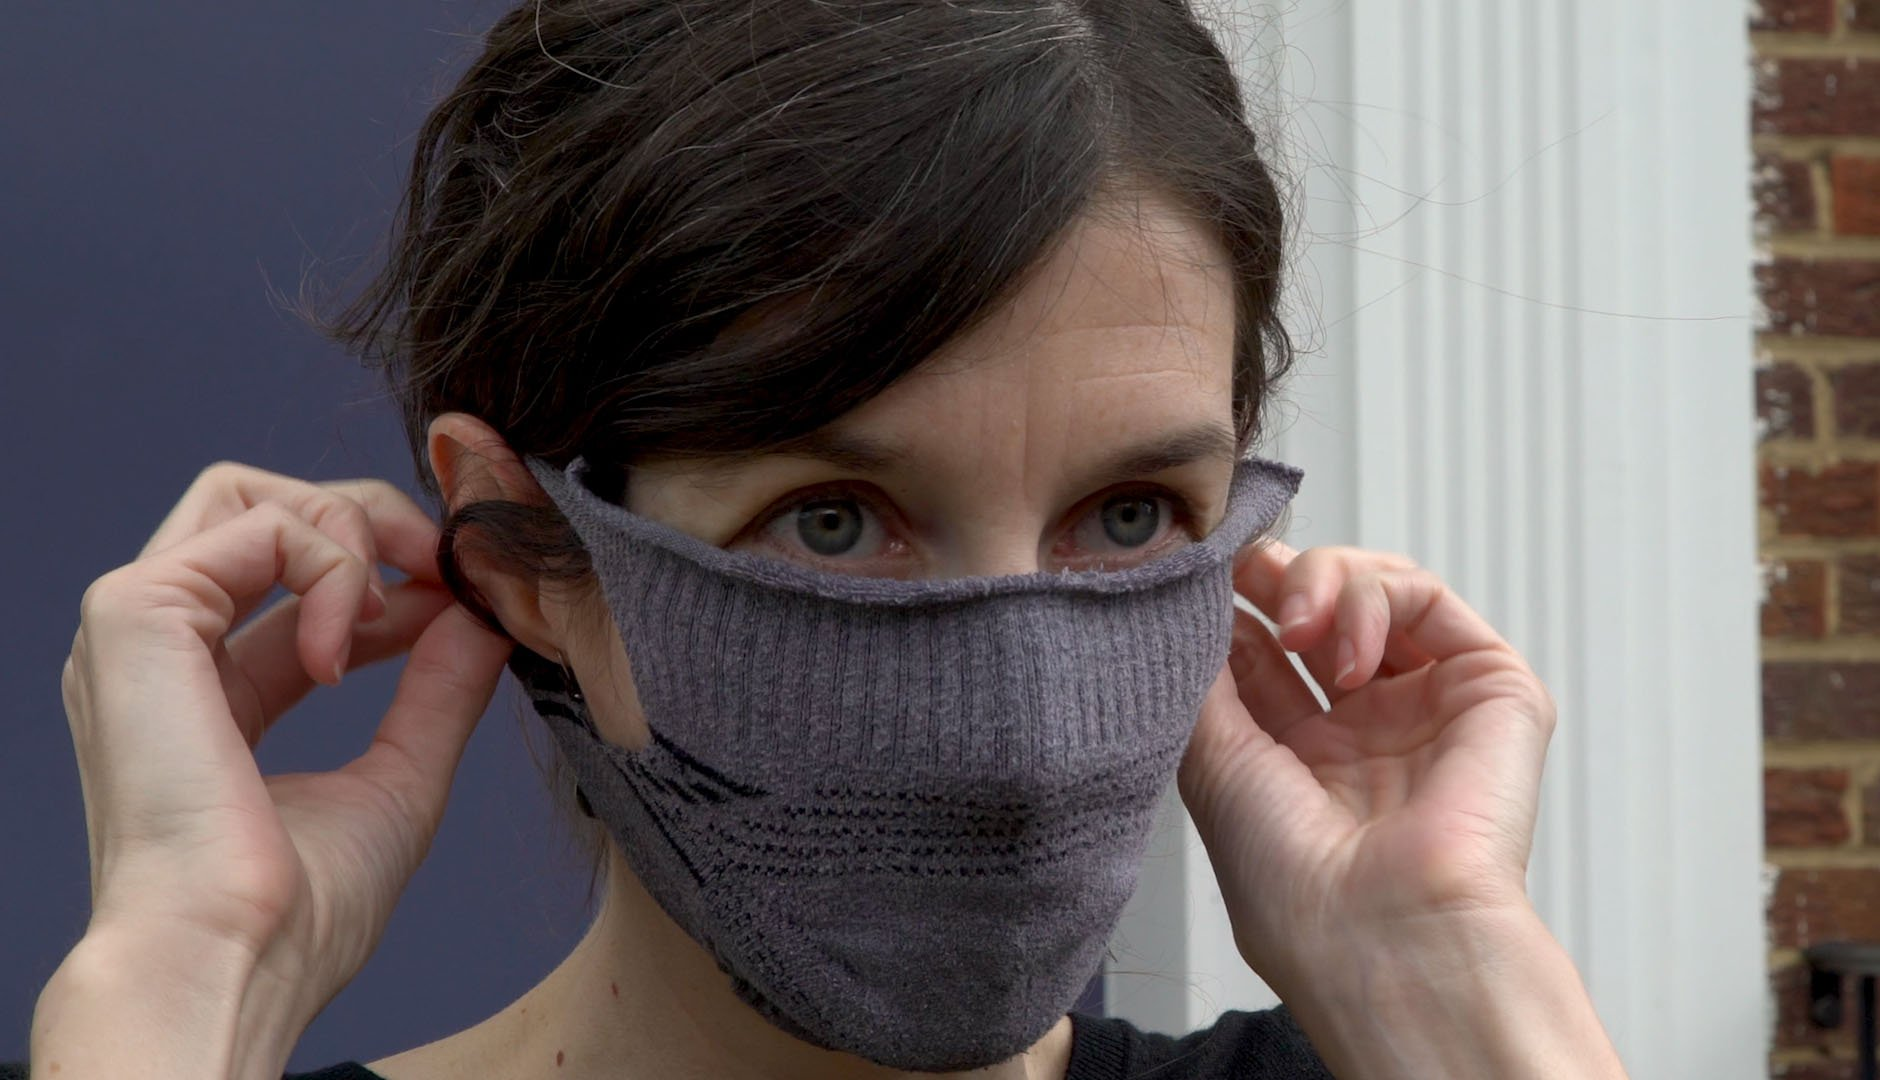 woman trying on homemade sock face mask